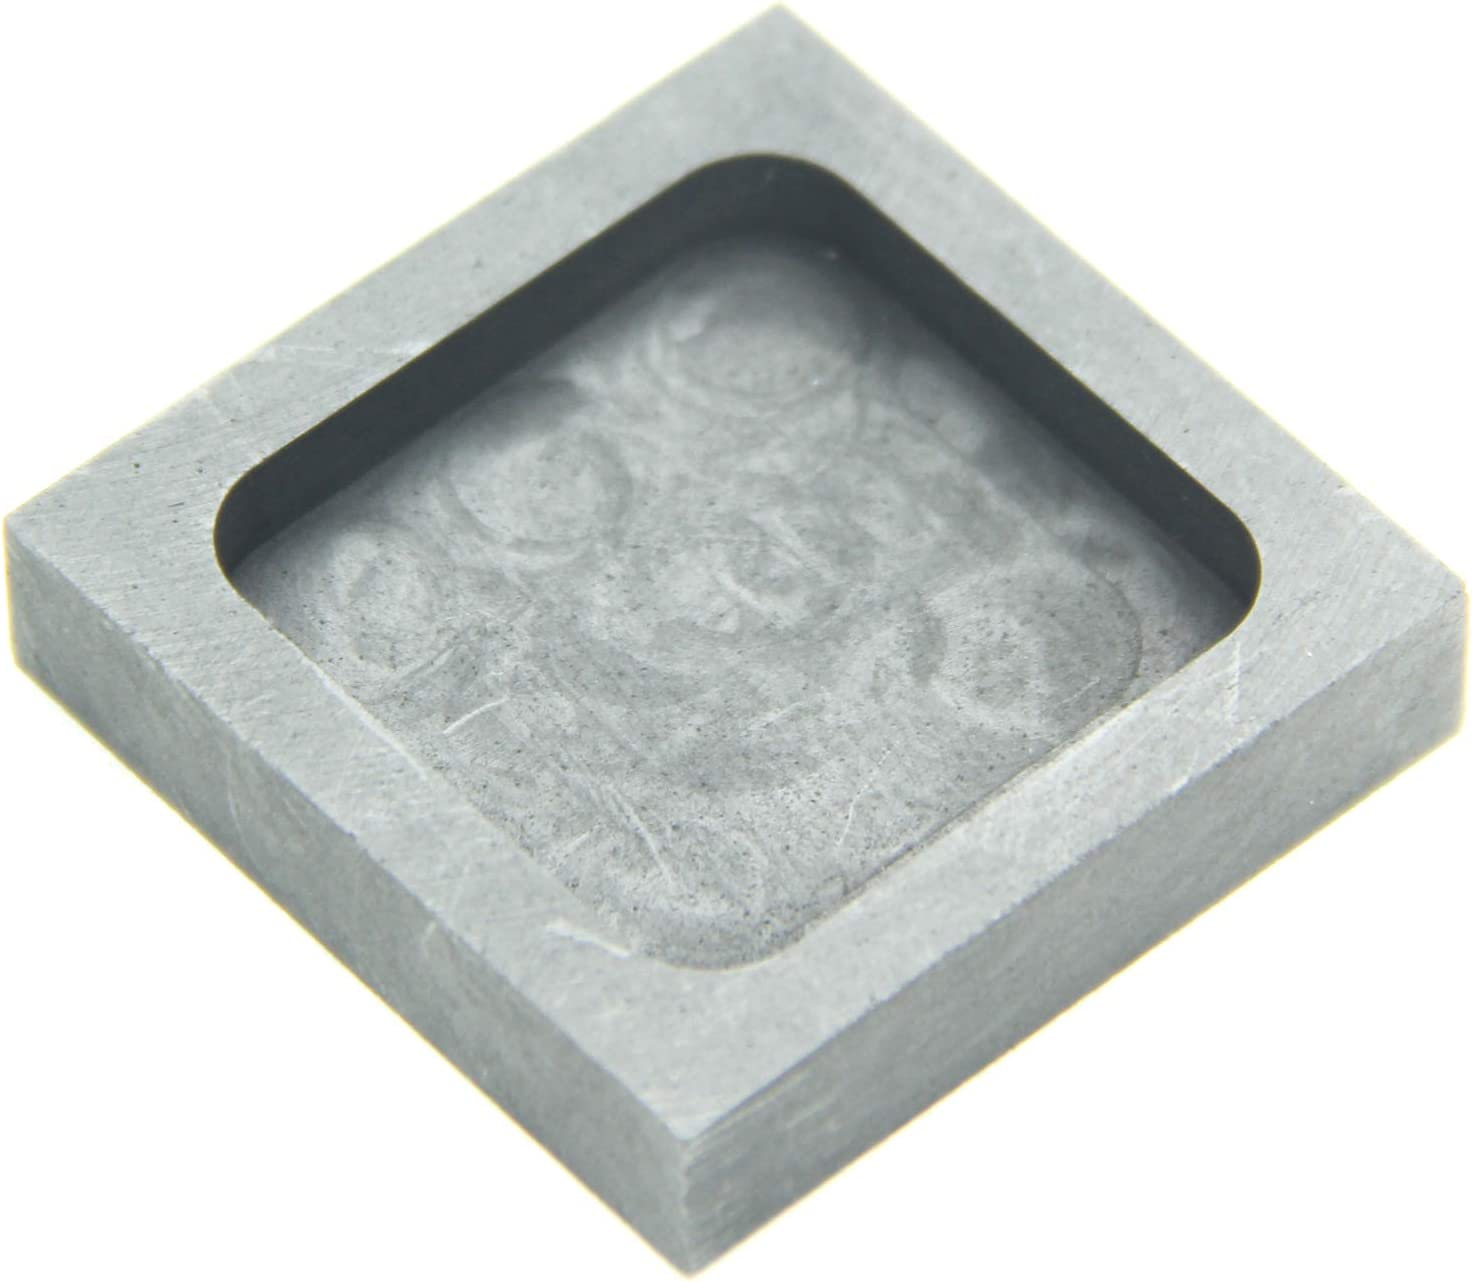 Graphite Ingot Inventory cleanup selling sale Mold At the price Melting Casting Mould Go Silver for